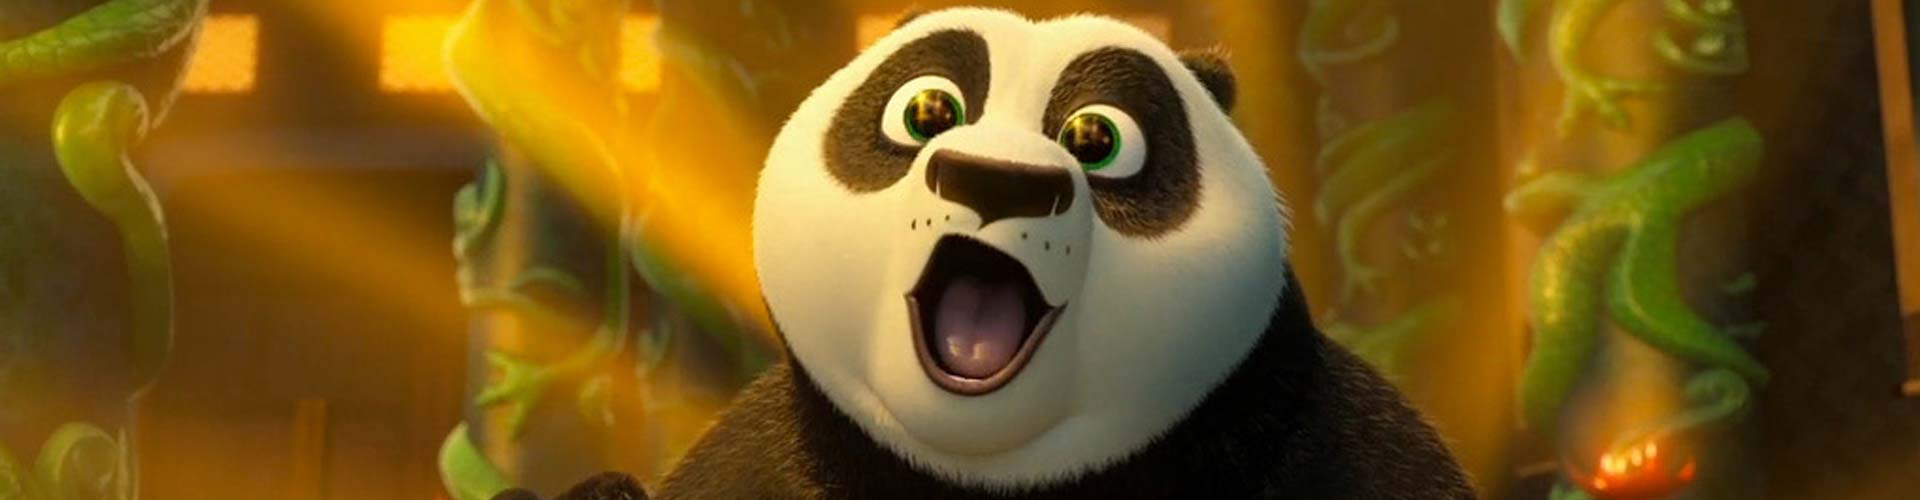 the most awesome kung fu panda moments | virgin media